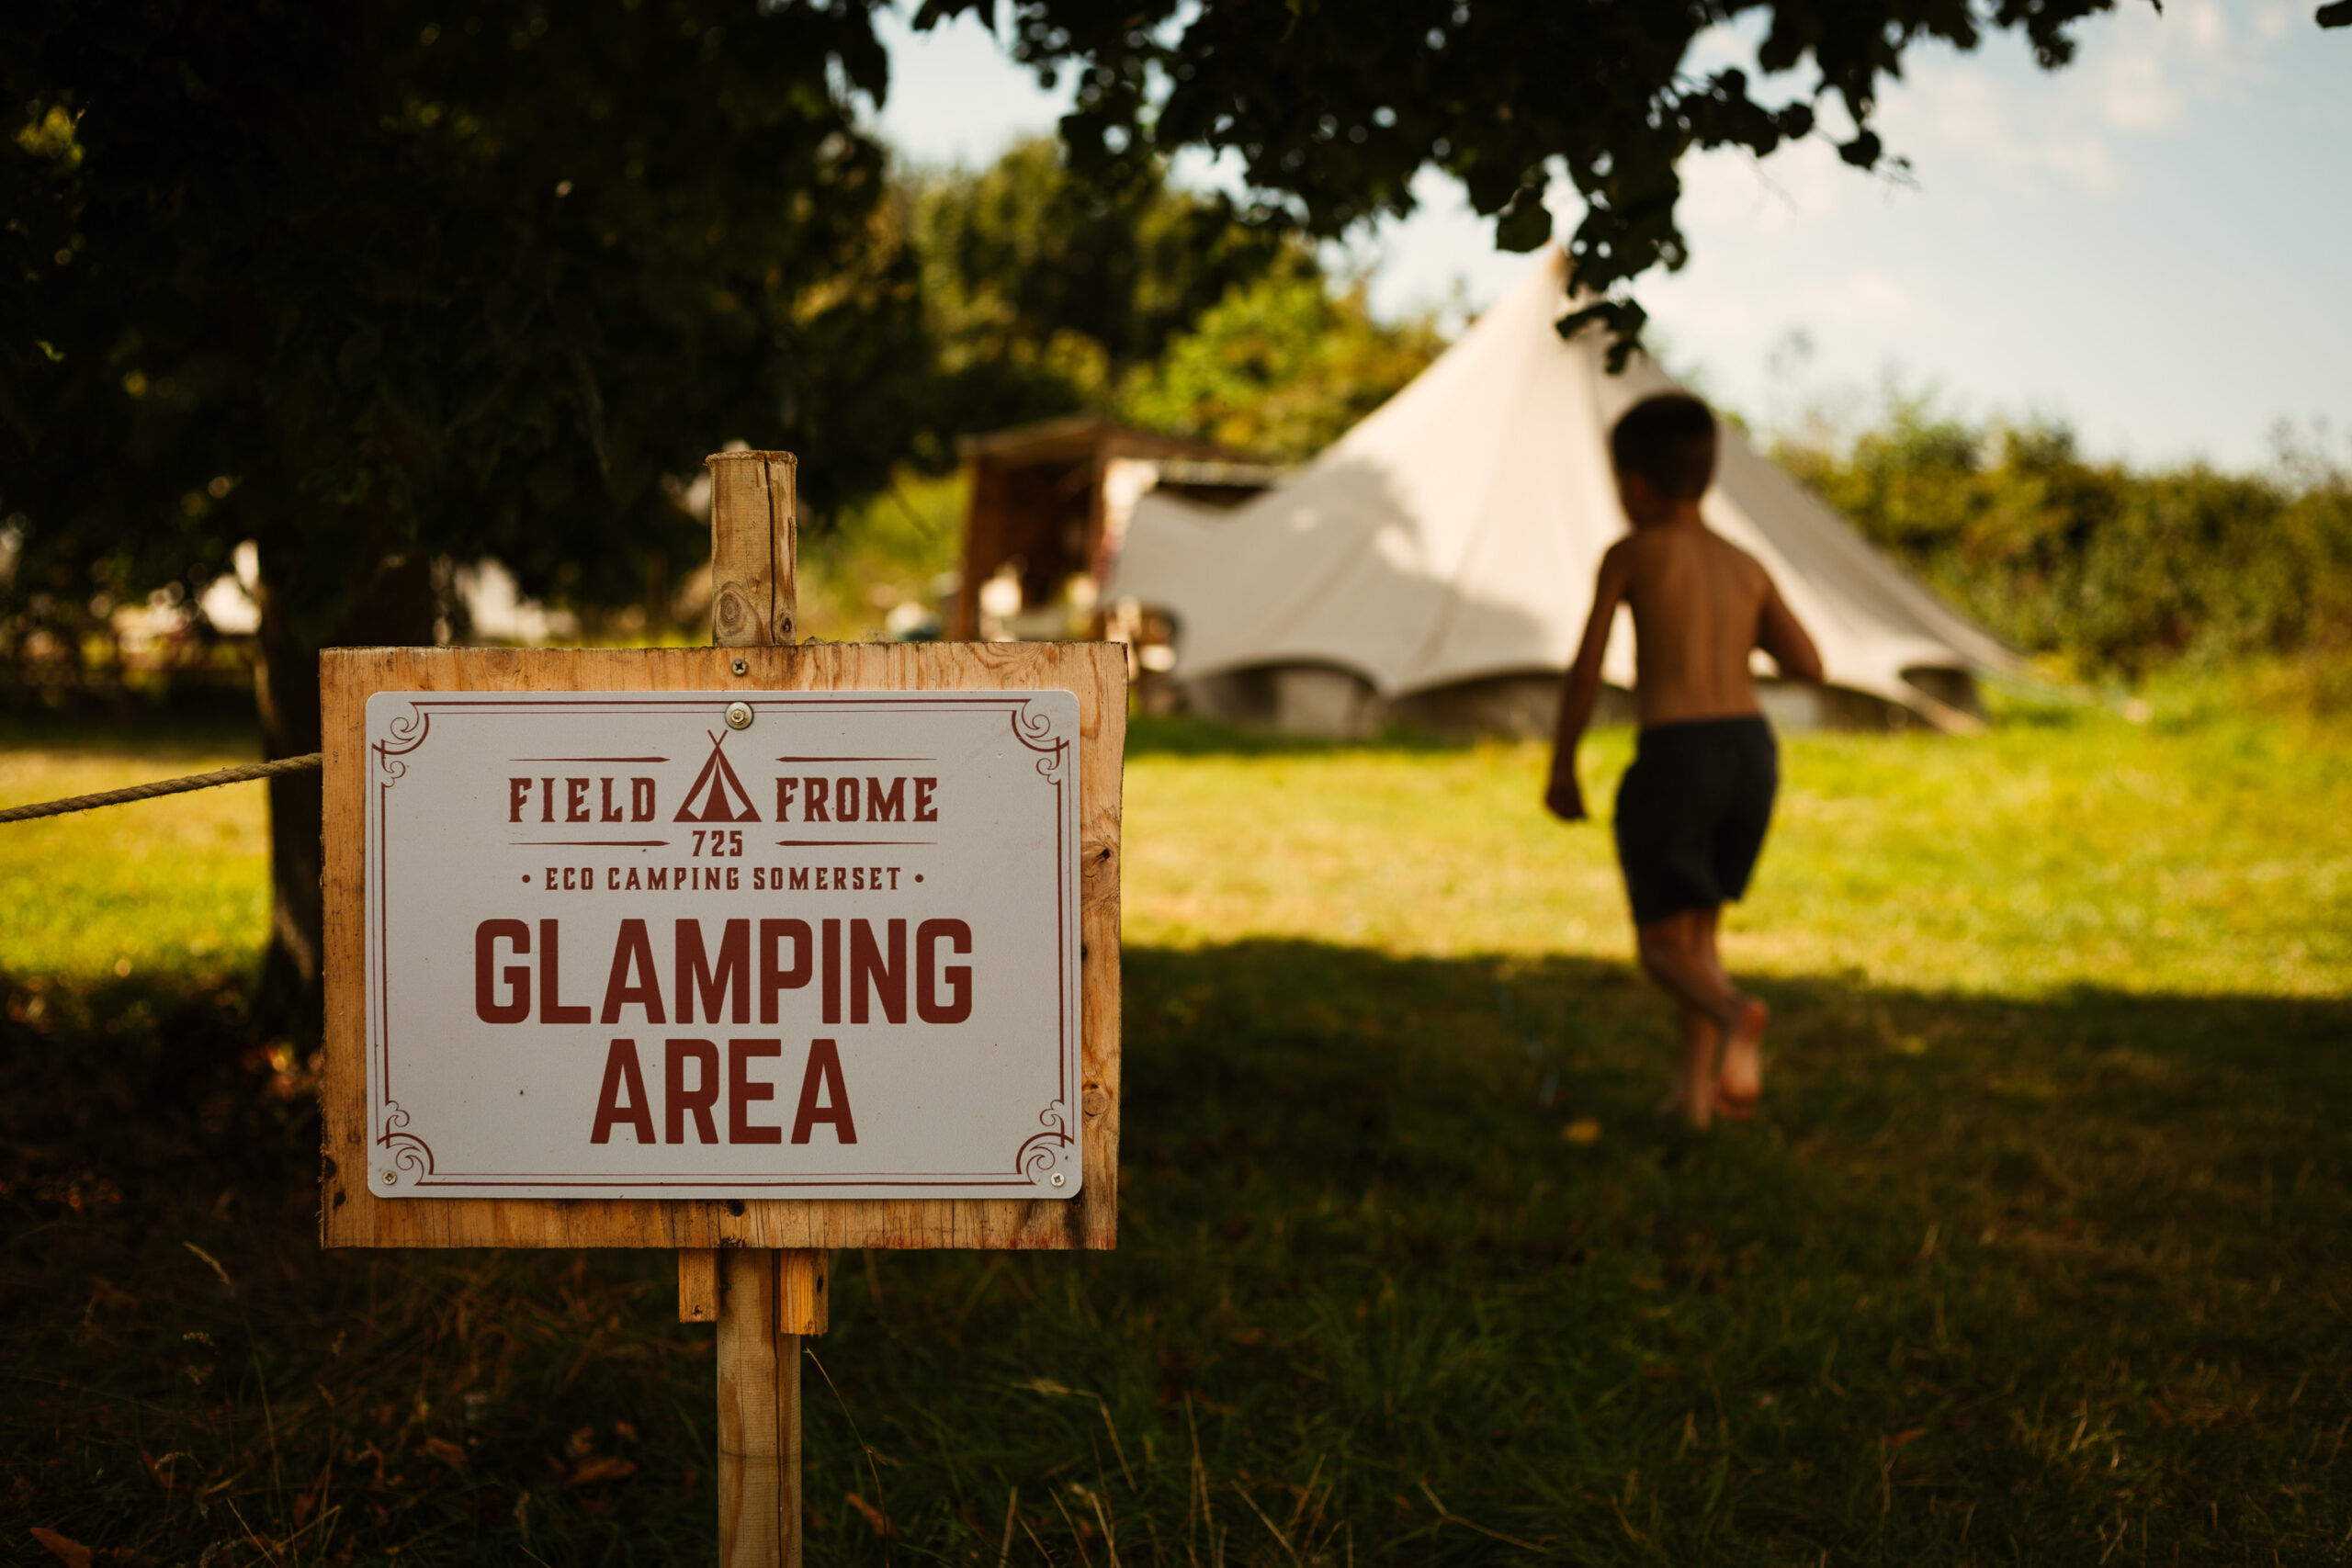 Entrance to our glamping area